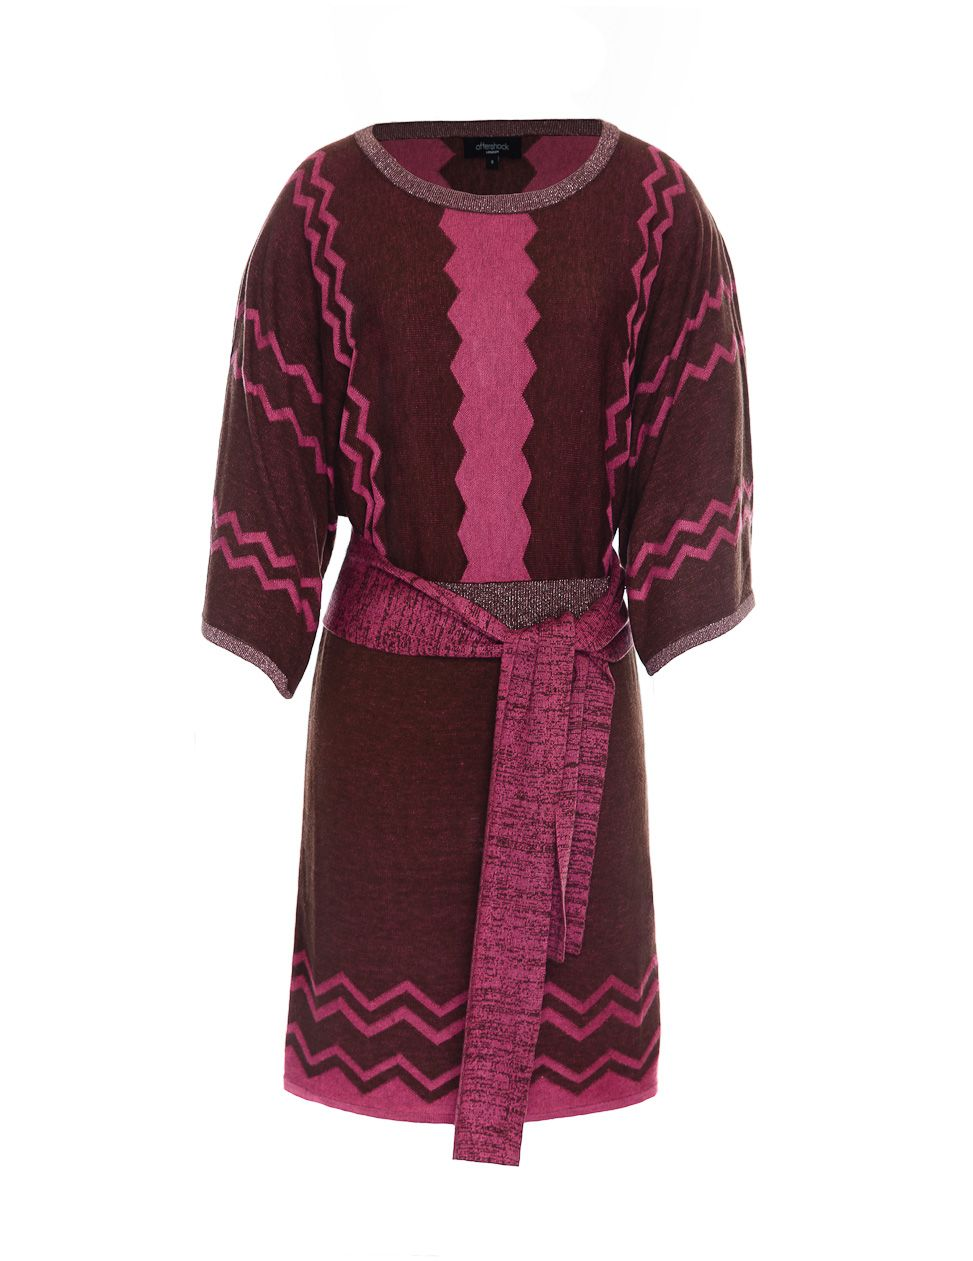 Tudina sweater dress